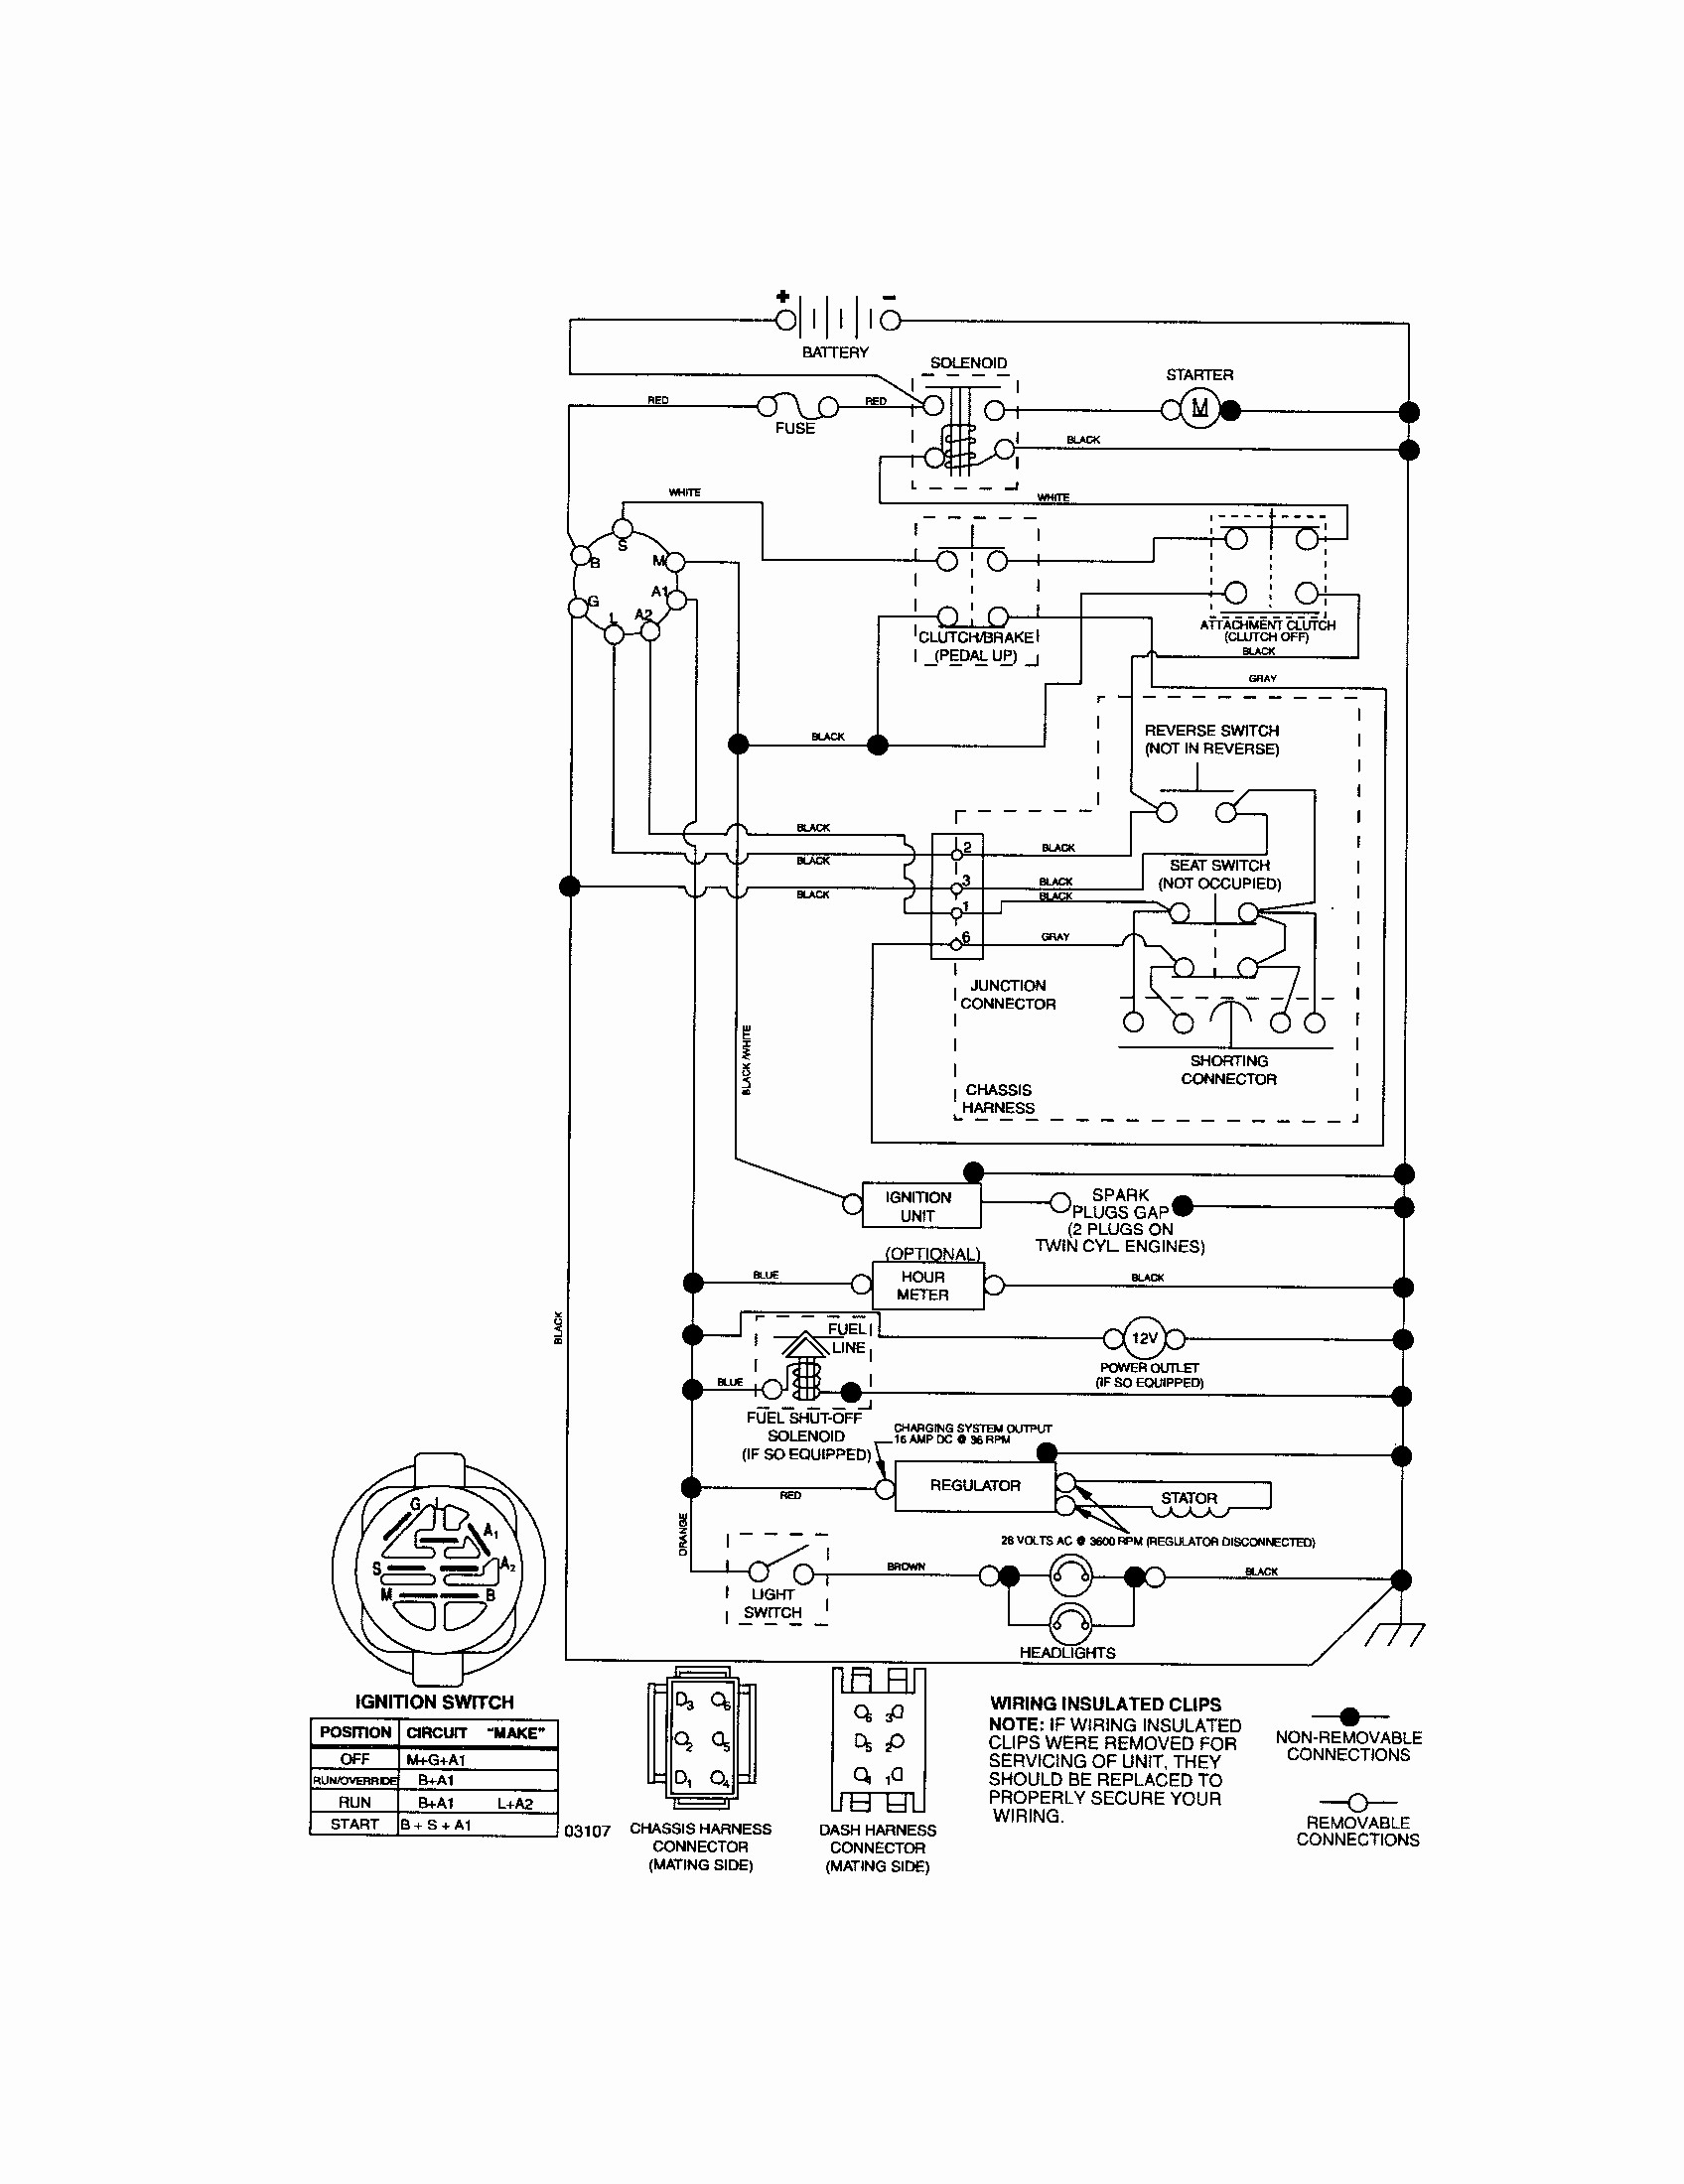 Kohler Engine Ignition Wiring Diagram 50 Fresh Kohler Ignition Switch Wiring Diagram Diagram Of Kohler Engine Ignition Wiring Diagram Key Wiring Diagram Wiring Diagram